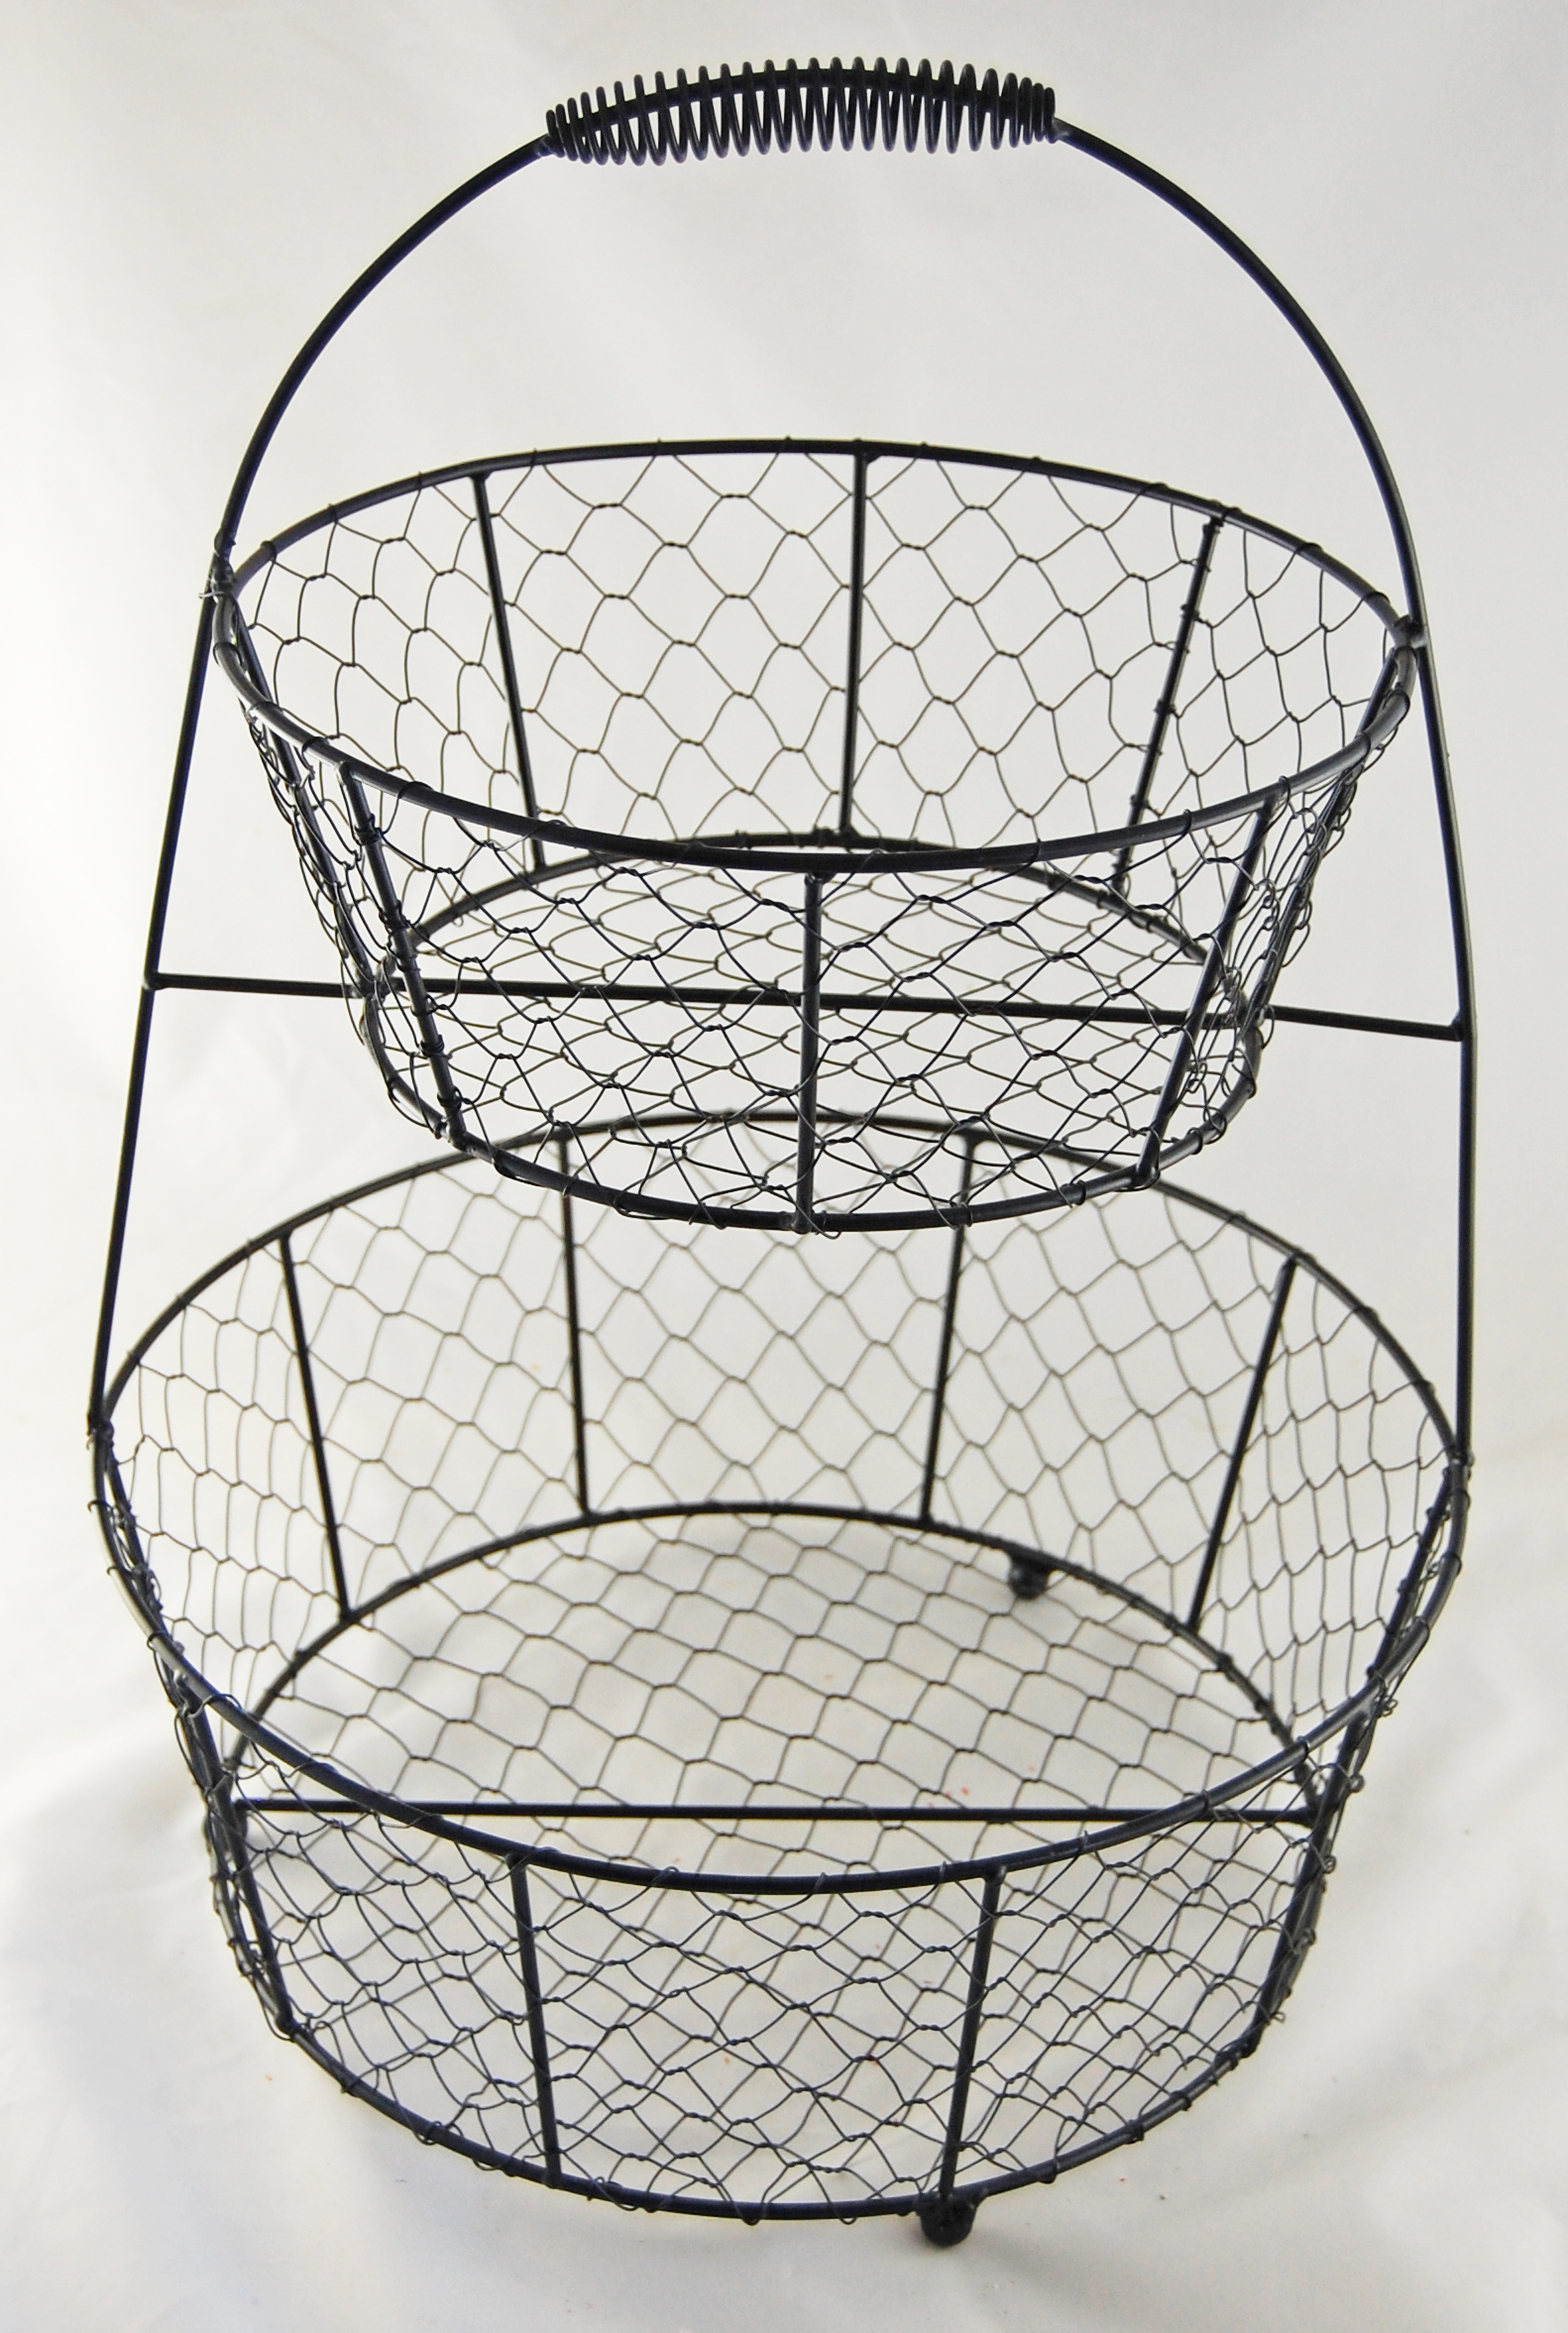 Two Tiered Wire Basket - Display Only